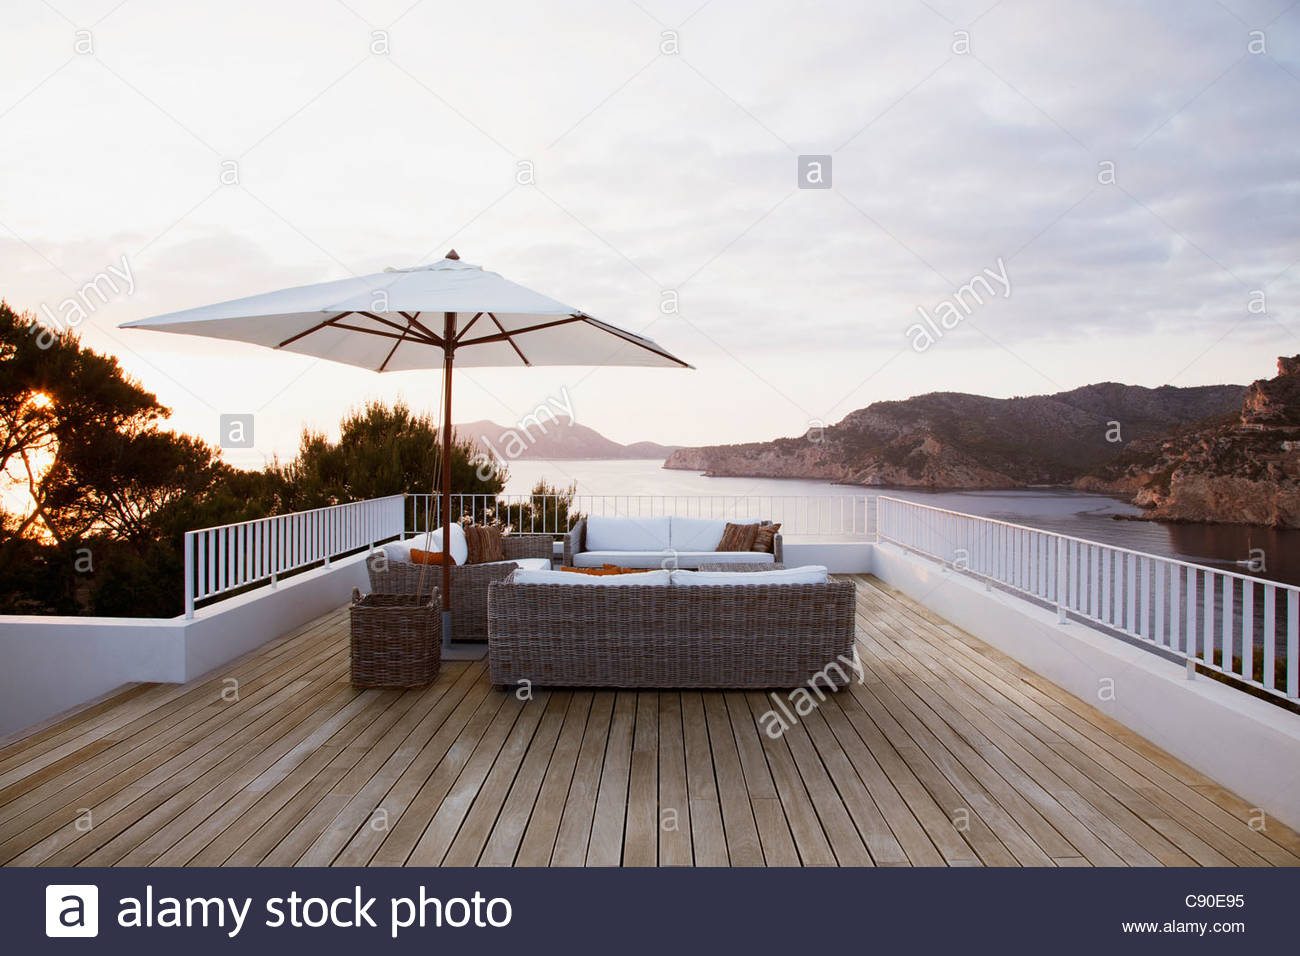 Patio furniture on modern deck - Stock Image